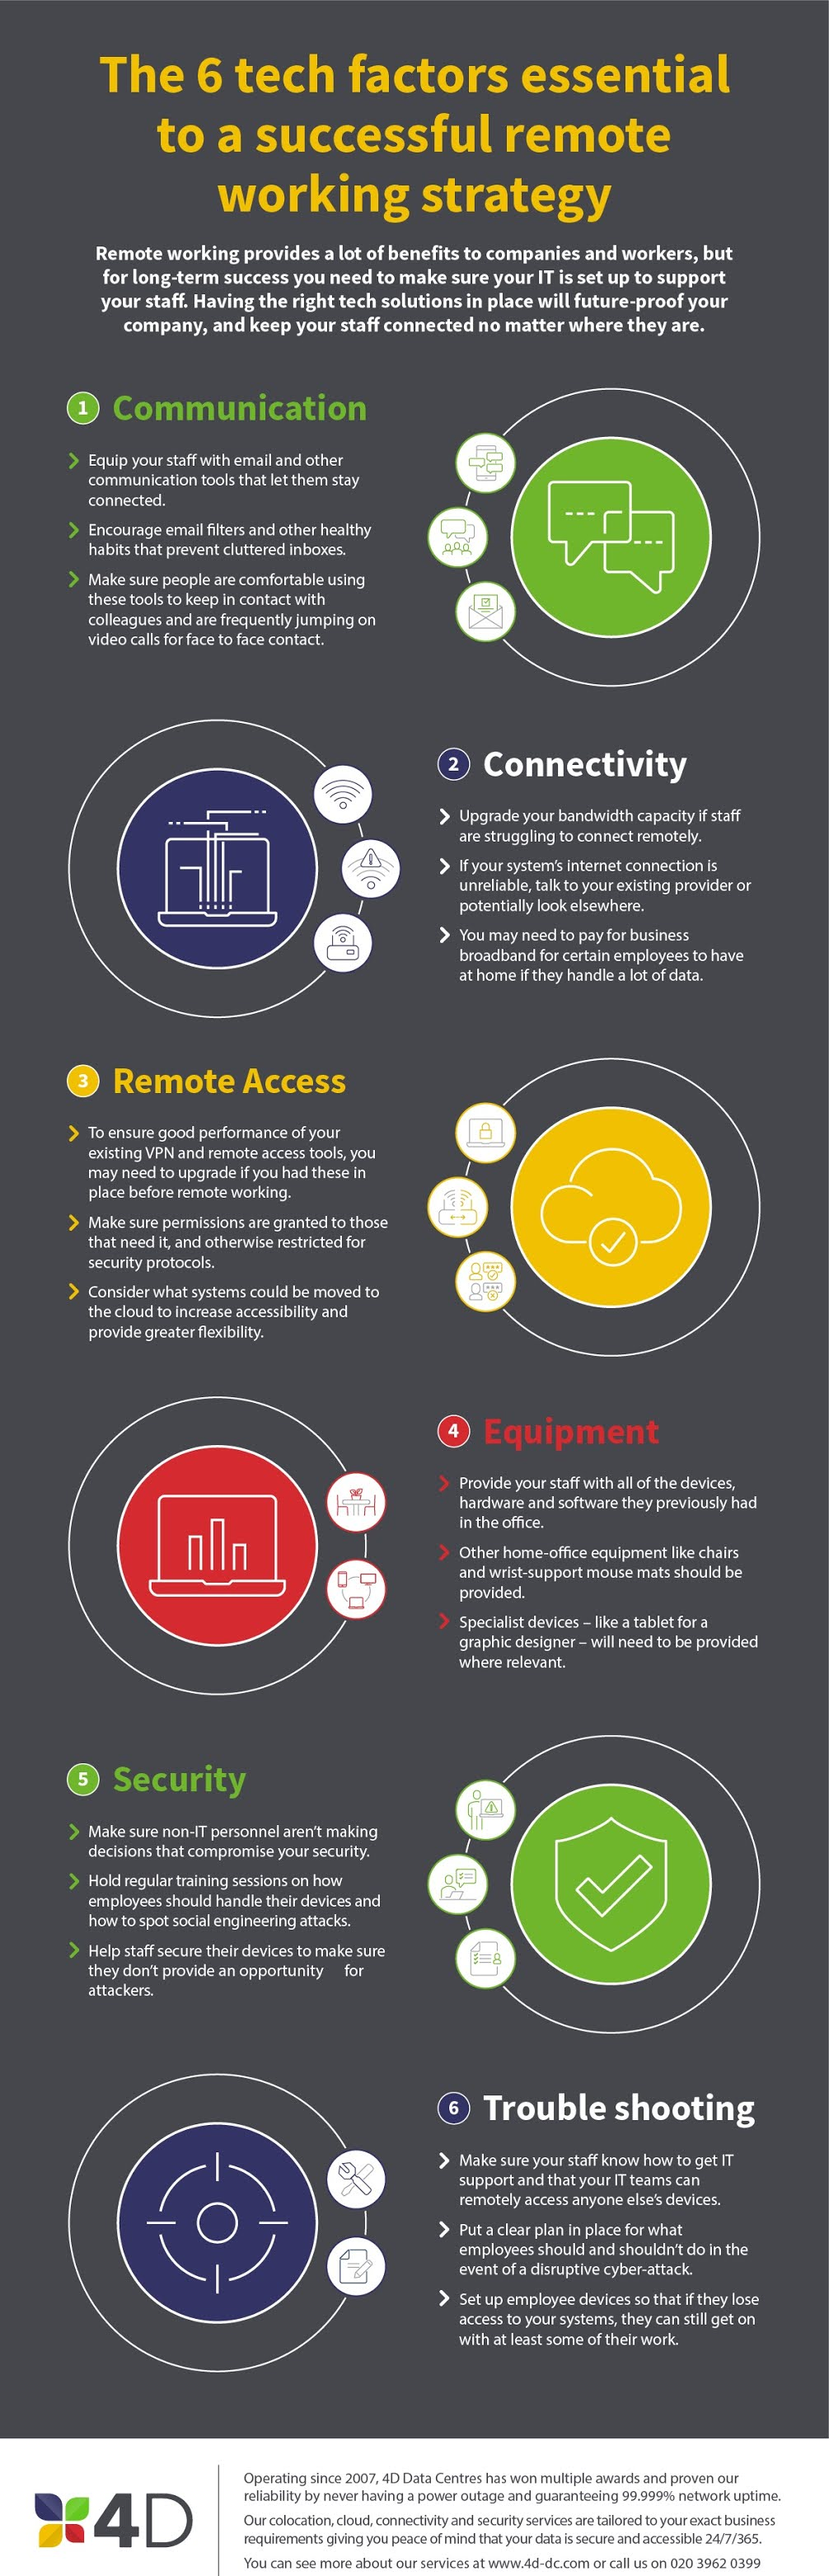 The 6 Tech Factors Essential To Successful Remote Working Strategy #infographic